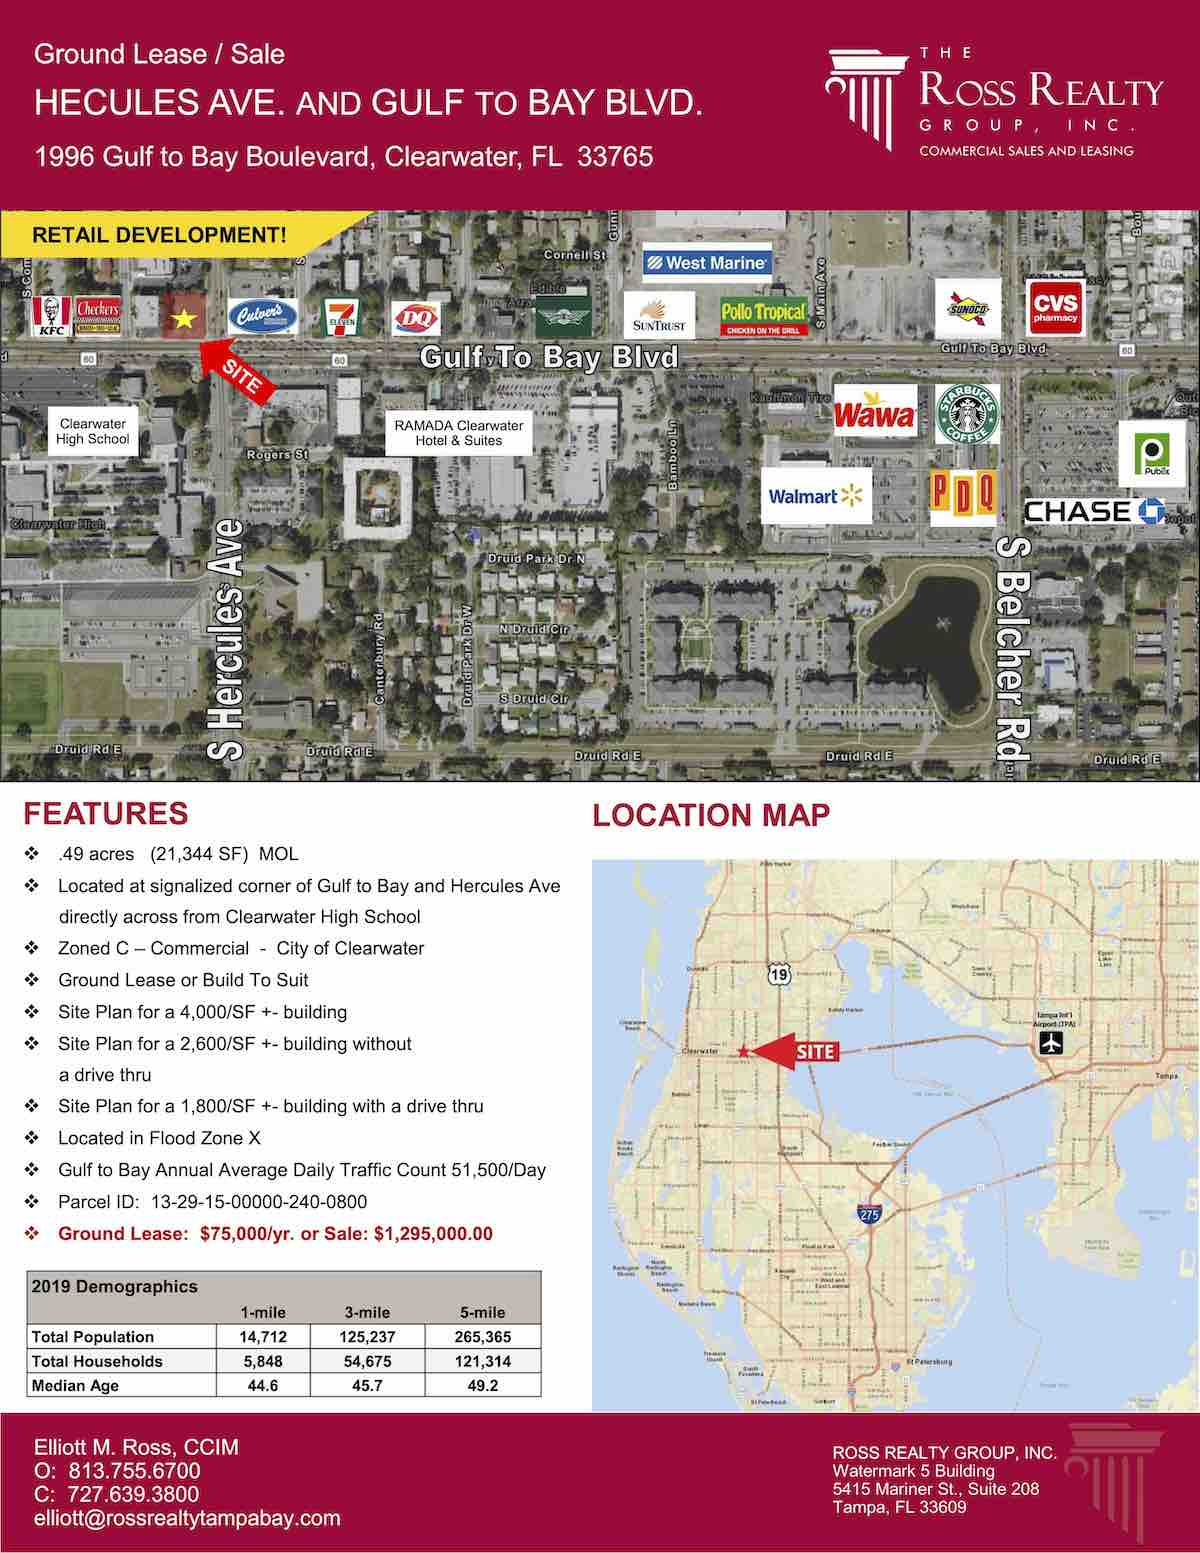 Tampa Commercial Real Estate - GROUND LEASE OR FOR SALE - Hercules Ave. and Gulf to Bay Blvd. - 1996 Gulf to Bay Boulevard, Clearwater, FL 33765 P1